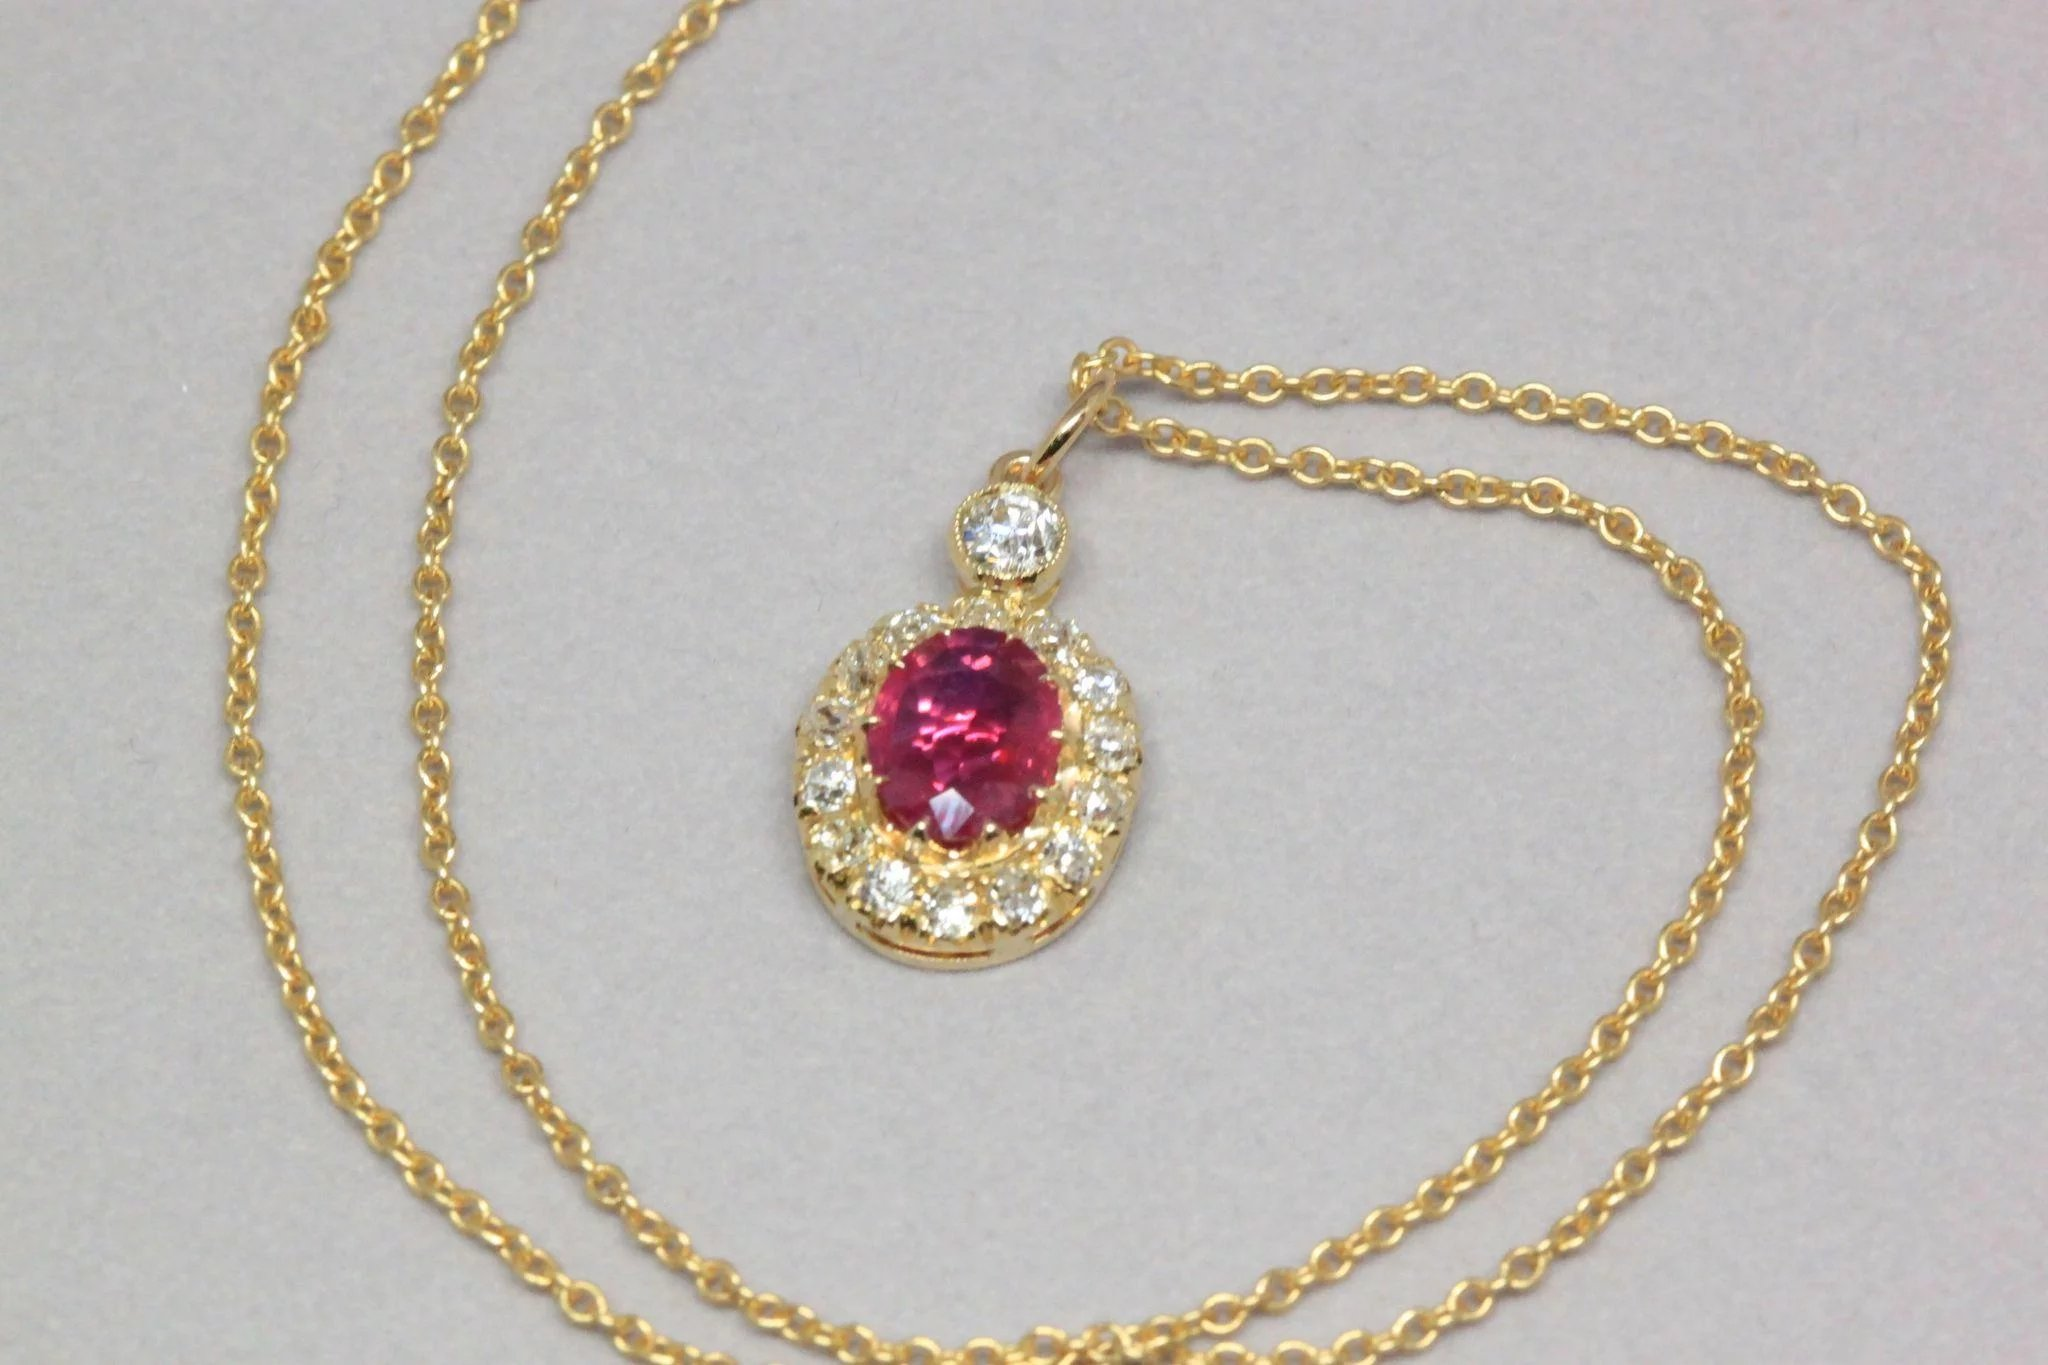 antique ruby estimate and diamond victorian necklace myshoplah lot